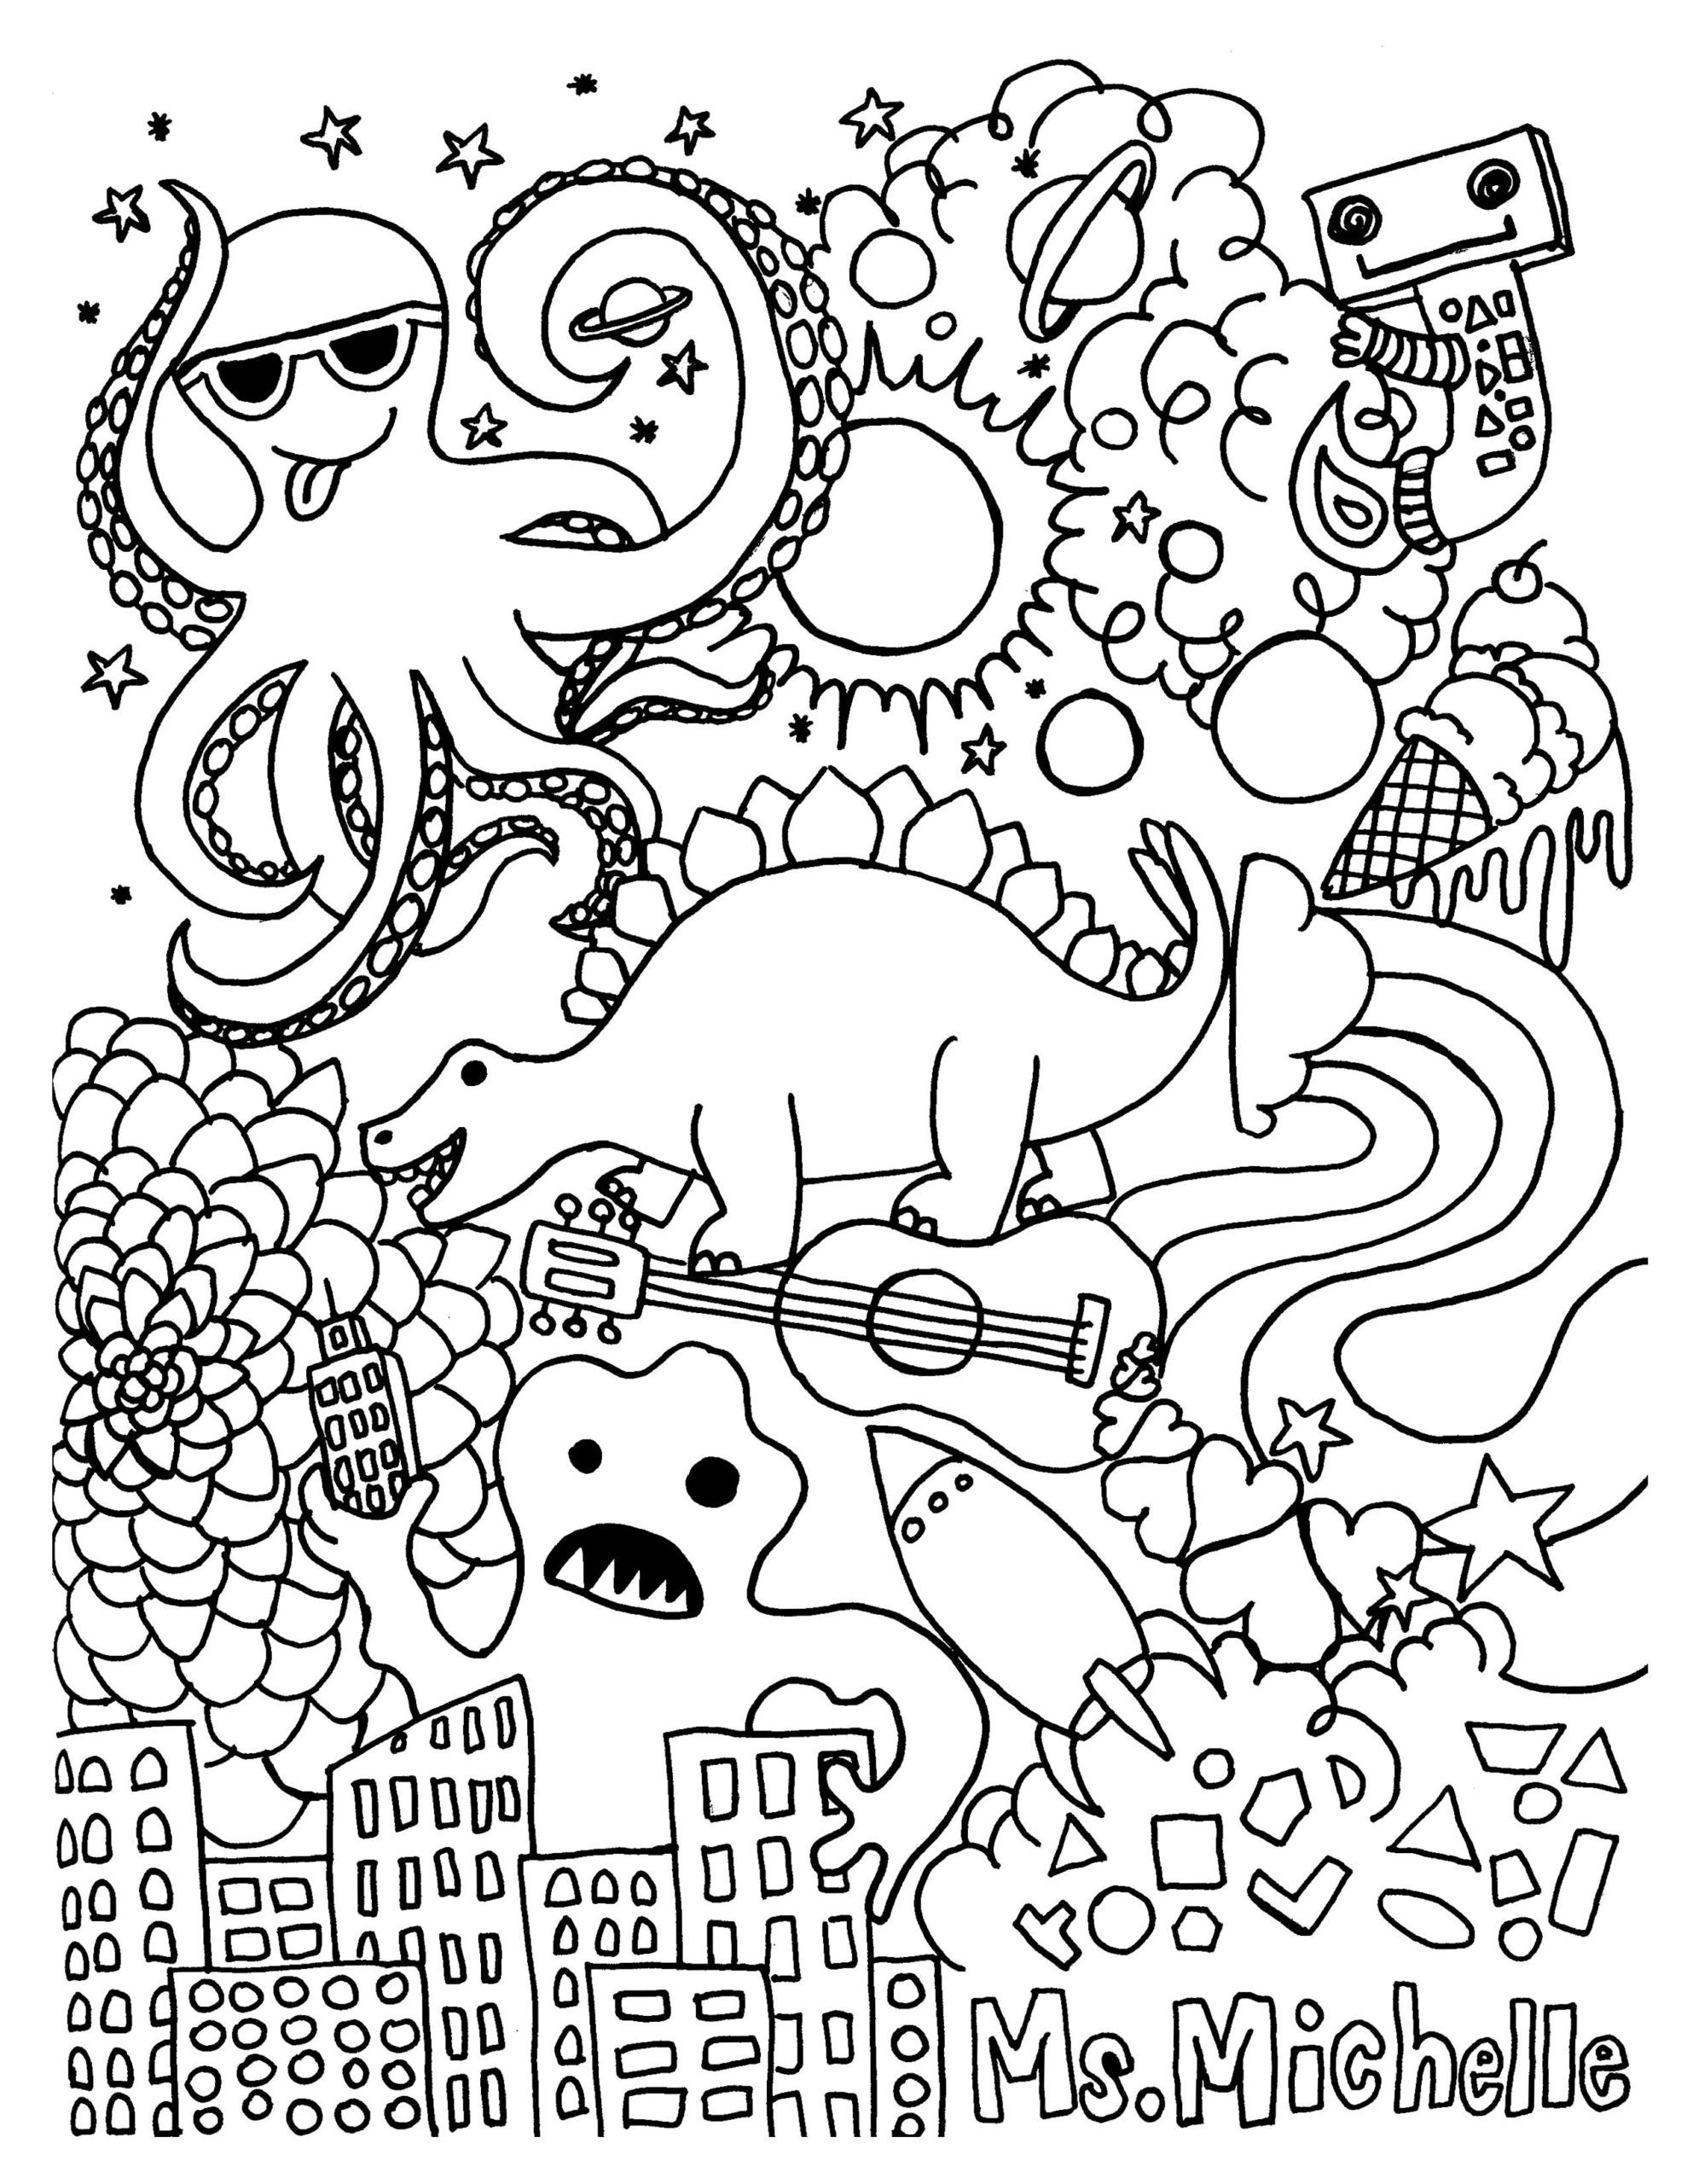 3rd Grade Coloring Worksheets Coloring Pages Free Printable Activity for Kids Luxury Book